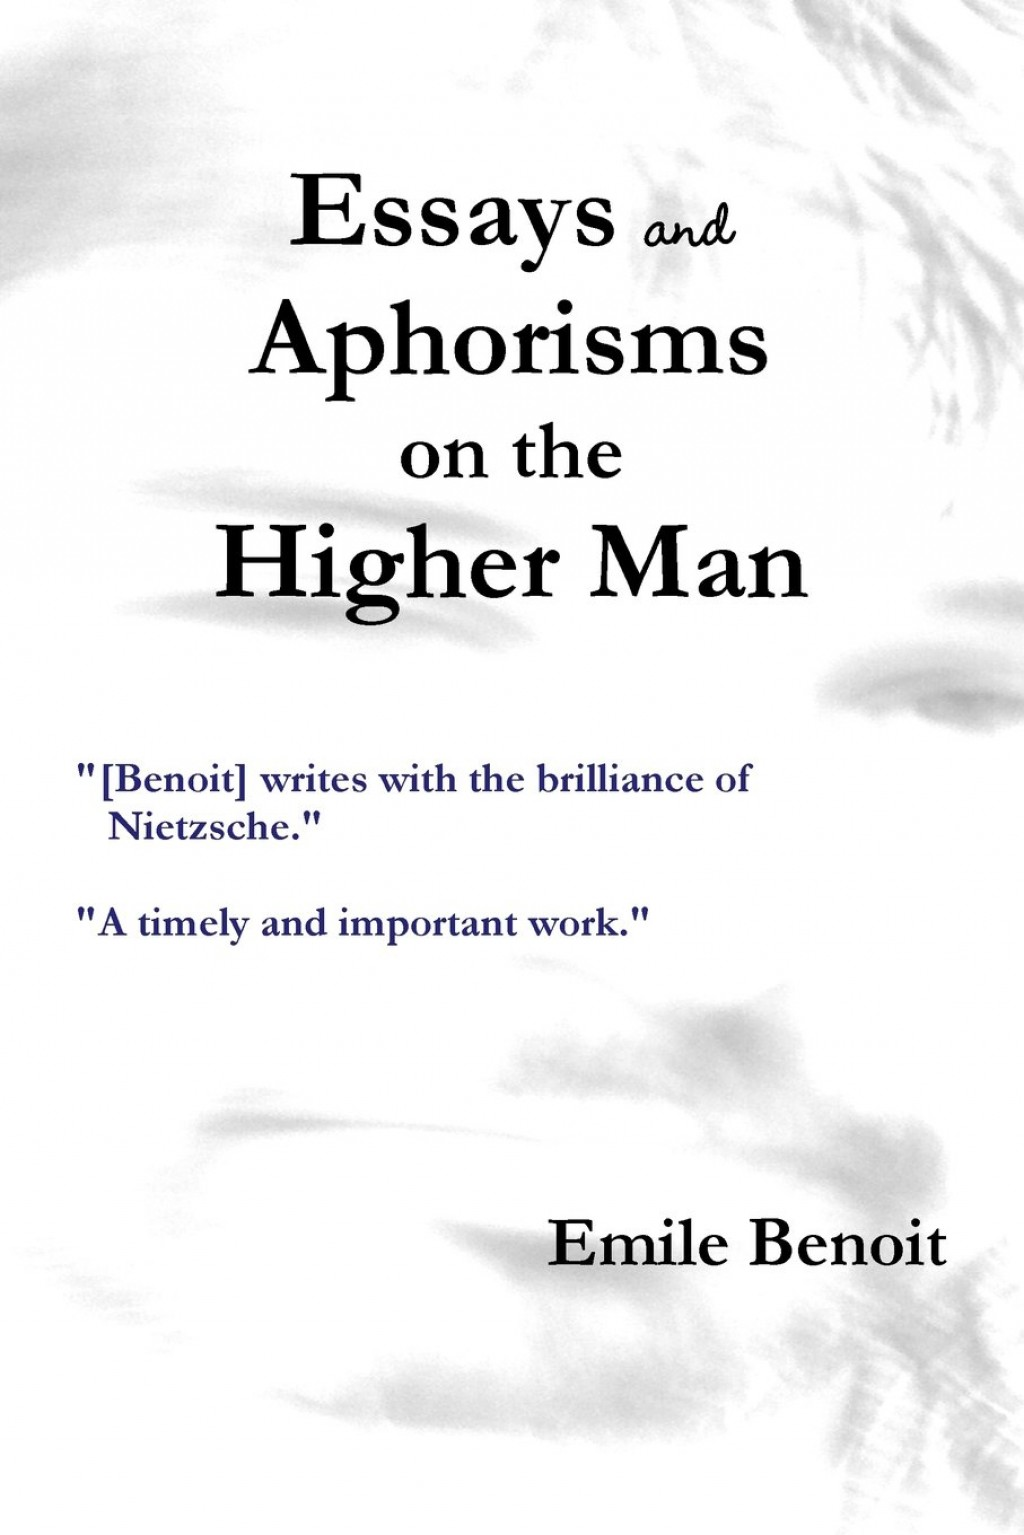 007 Essays And Aphorisms Essay Example Frightening By Arthur Schopenhauer Pdf Large